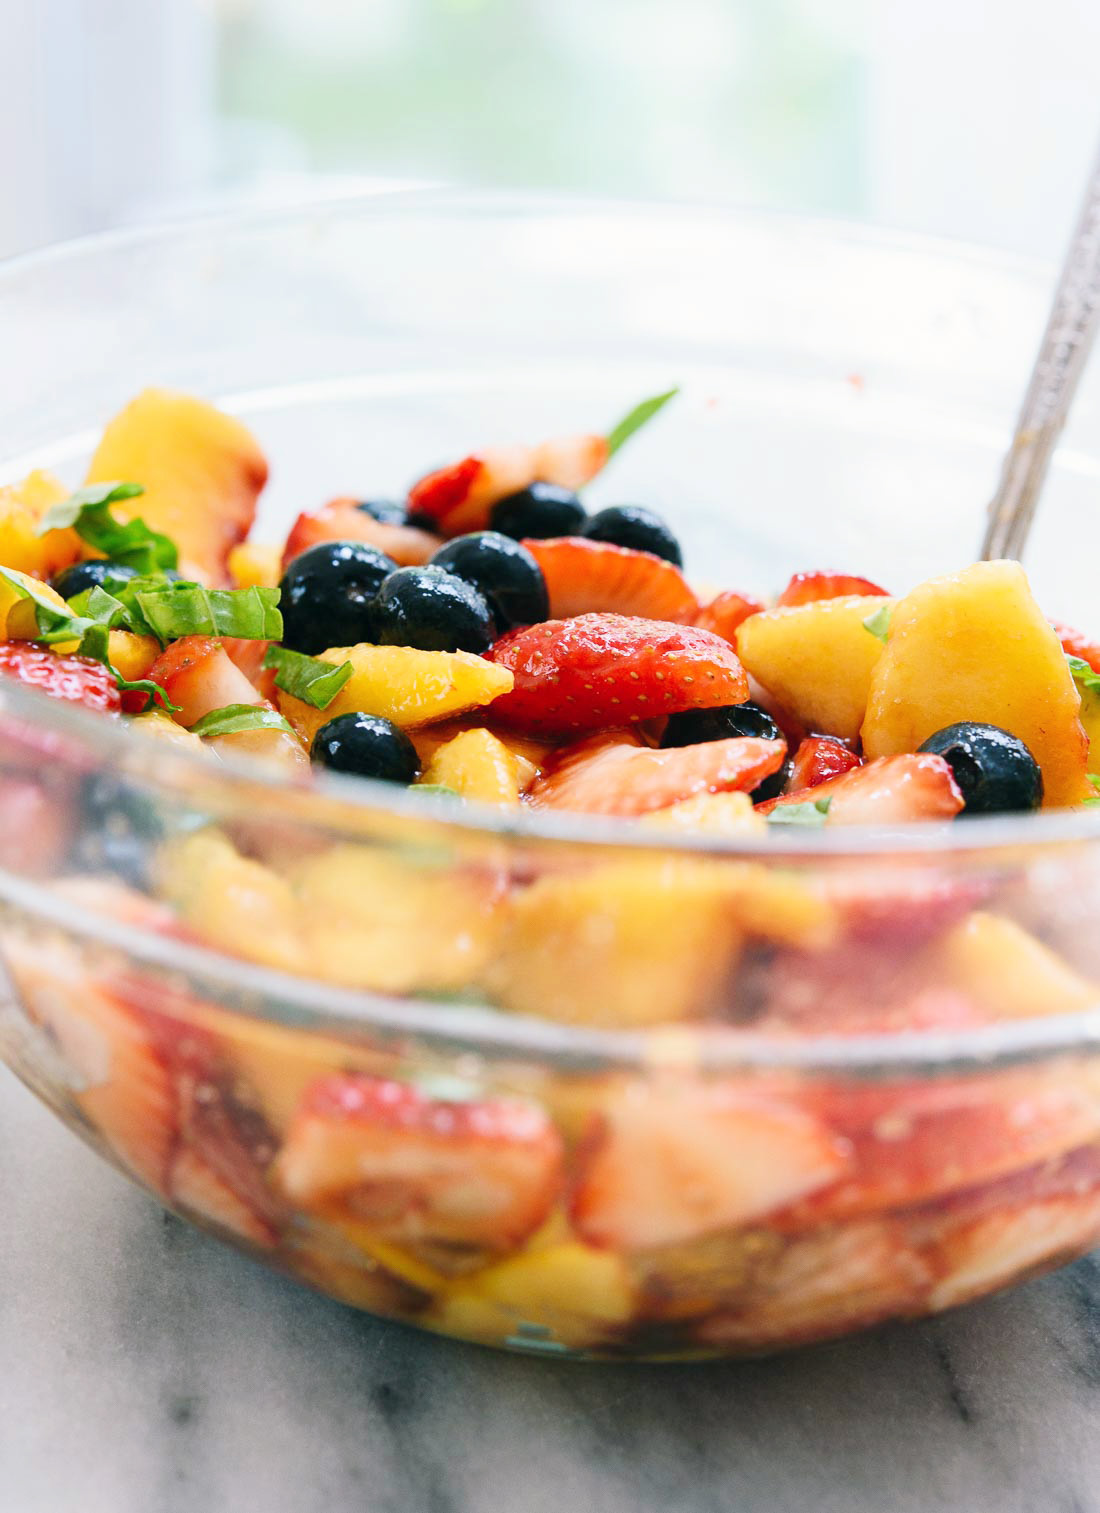 This summertime fruit salad recipe is super quick and easy to make - cookieandkate.com